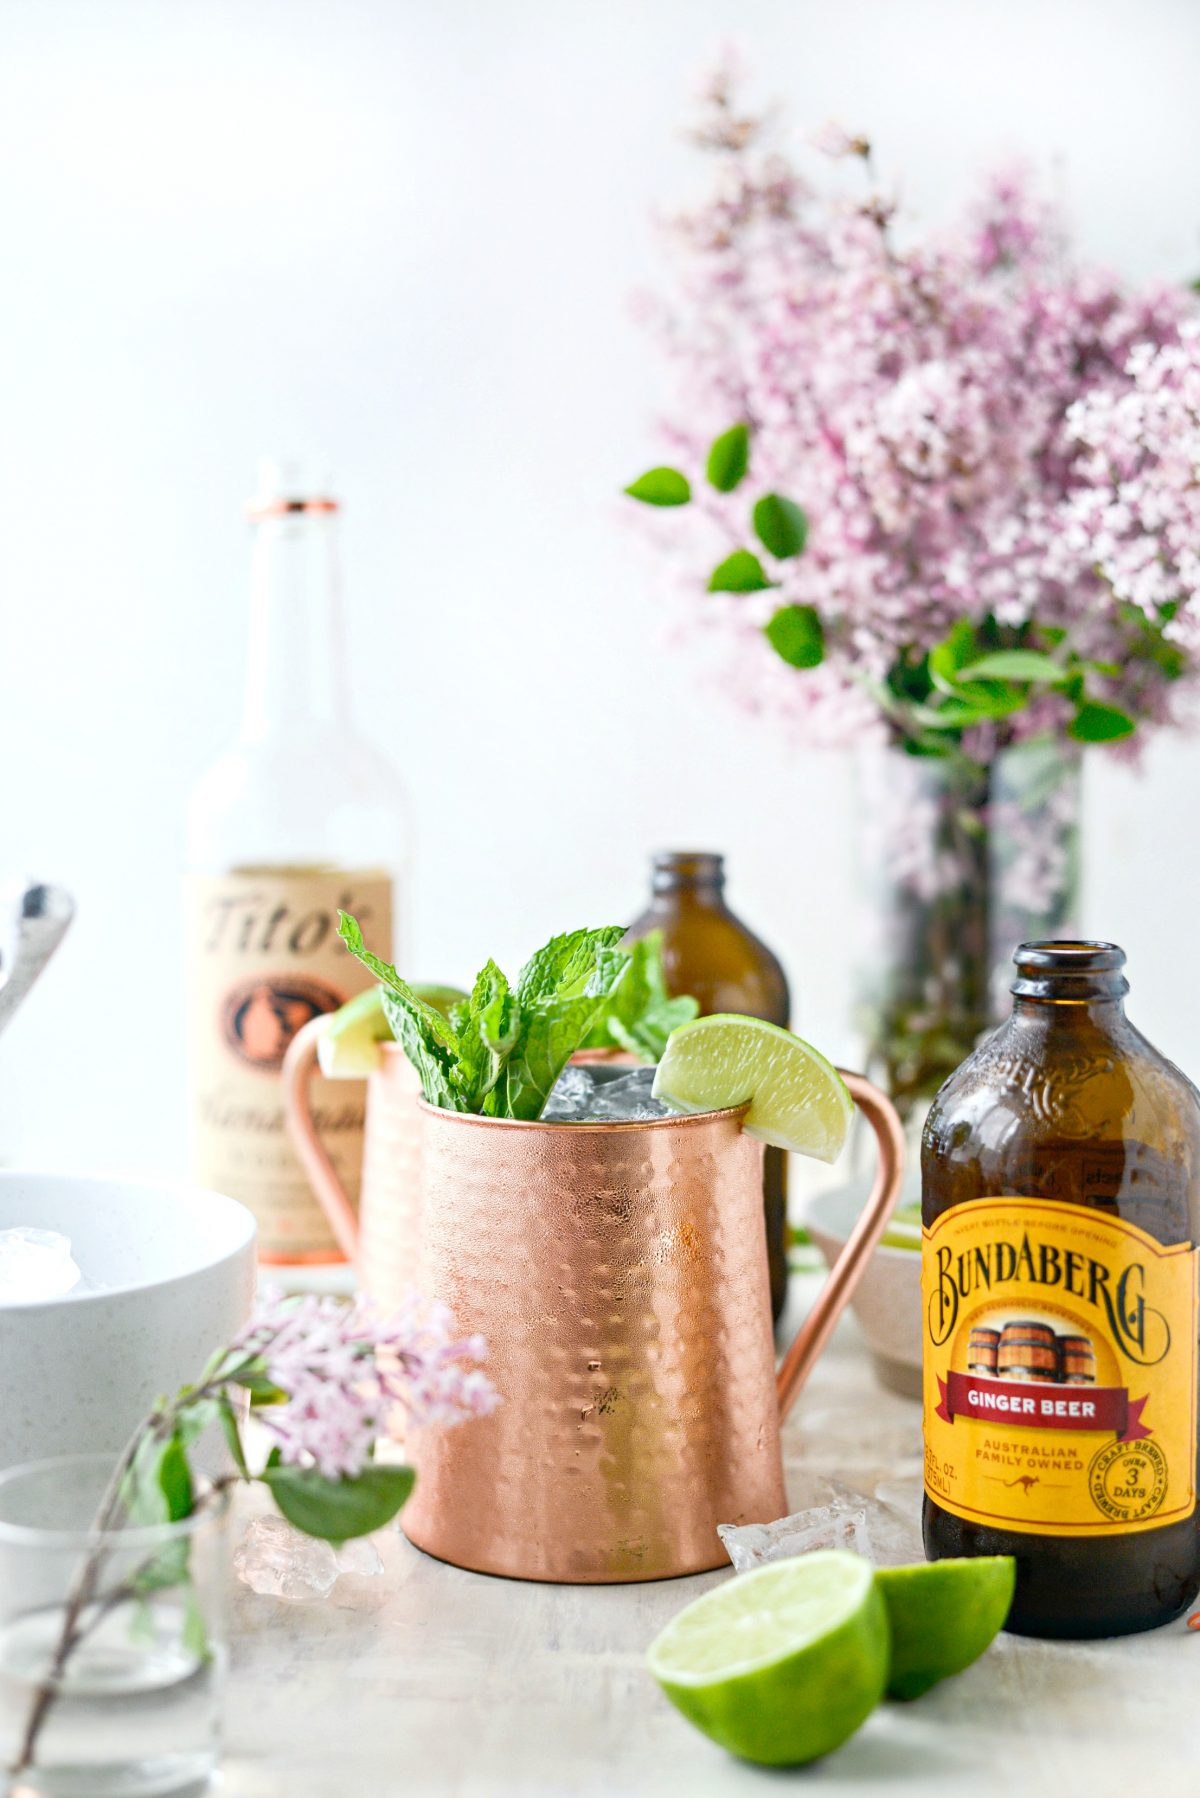 Classic Moscow Mule l SimplyScratch.com #moscowmule #adultbeverage #cocktail #lime #vodka #gingerbeer #beverage